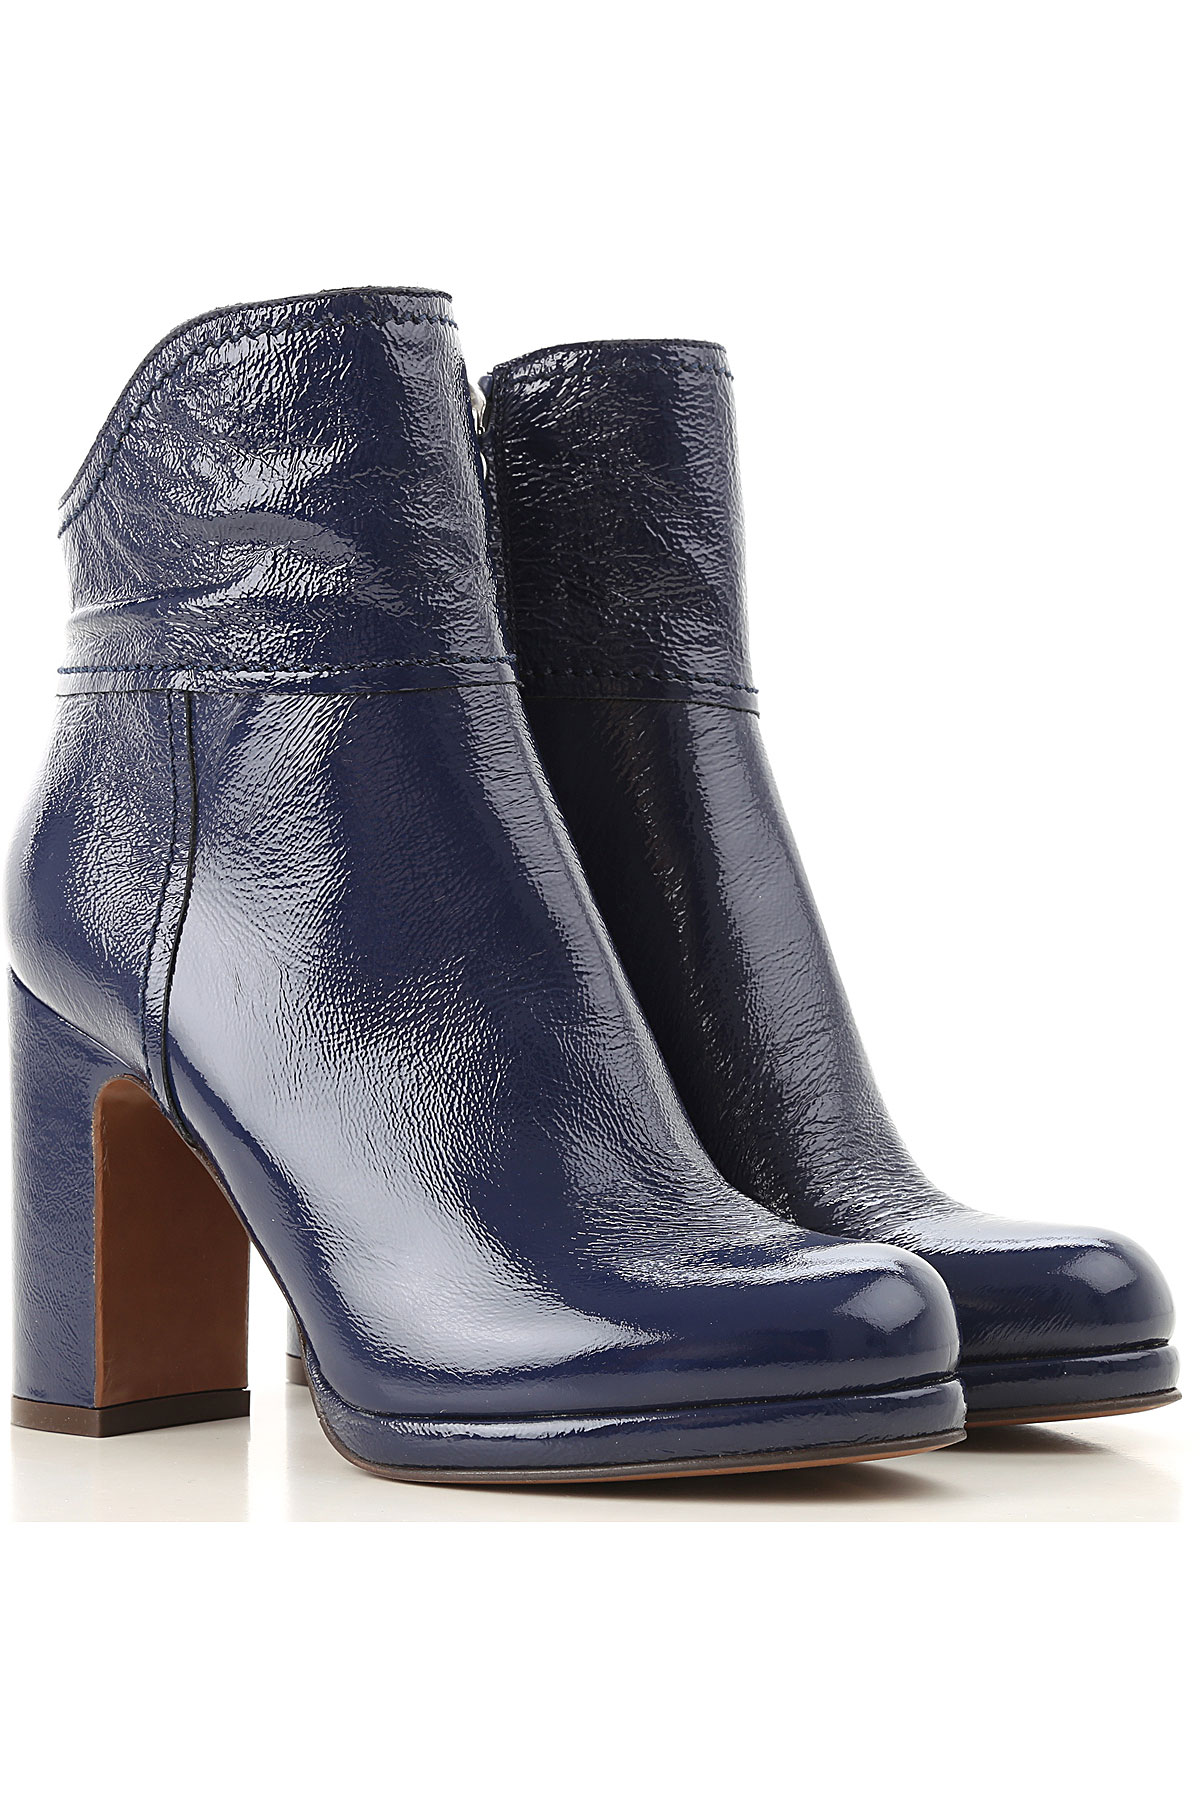 Image of Lautre Chose Boots for Women, Booties, navy, Naplak, 2017, 10 6 7 8